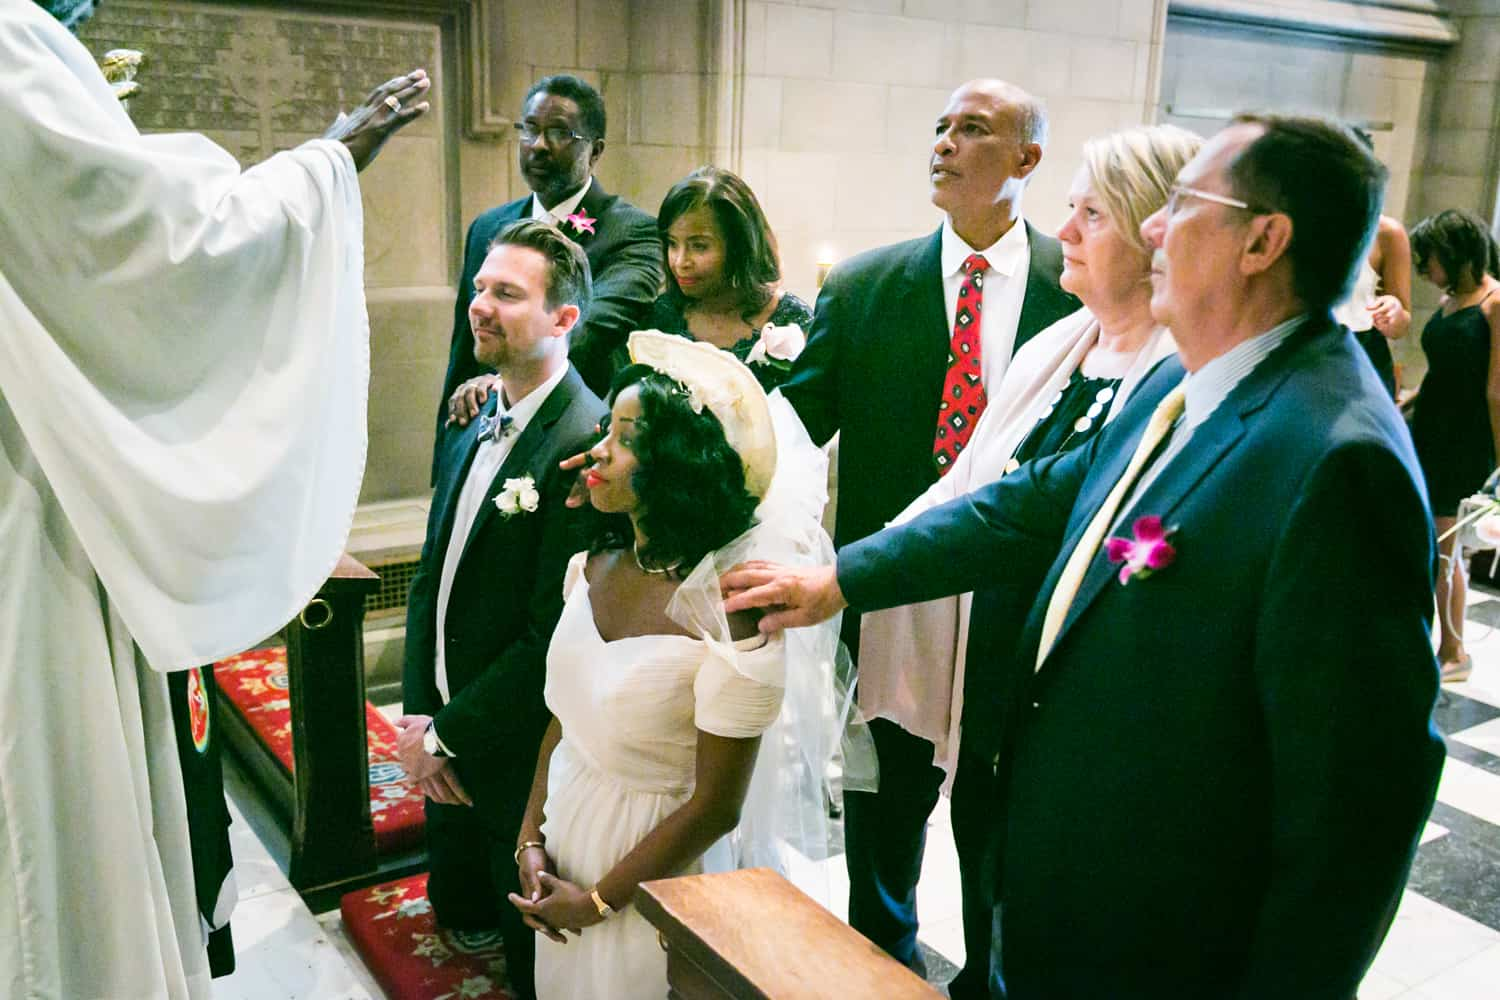 Guests with hands on bride and groom during Trinity Church wedding ceremony